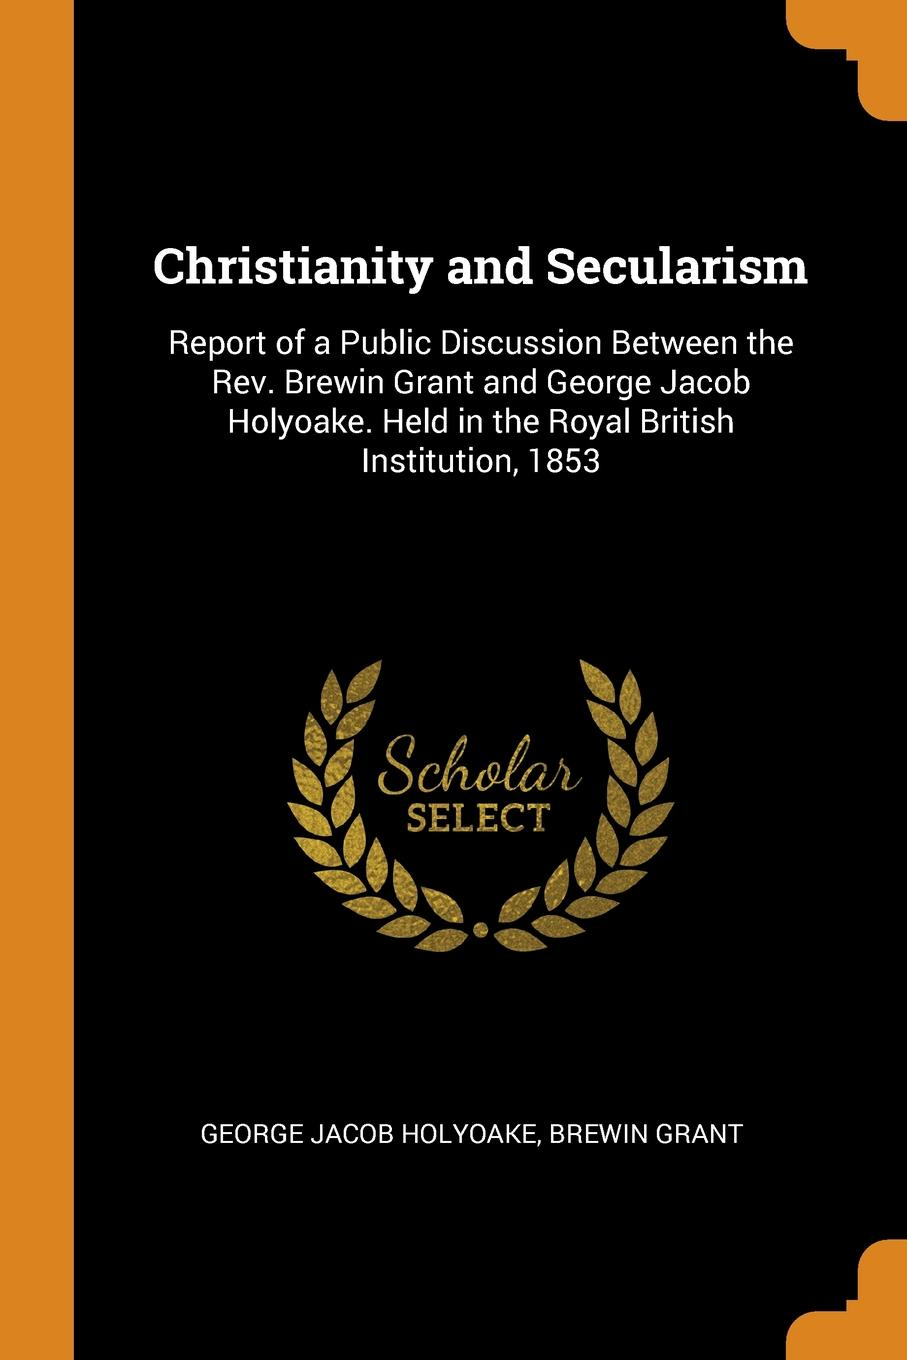 Christianity-and-Secularism-Report-of-a-Public-Discussion-Between-the-Rev-Brewin-Grant-and-George-Jacob-Holyoake-Held-in-the-Royal-British-Institution